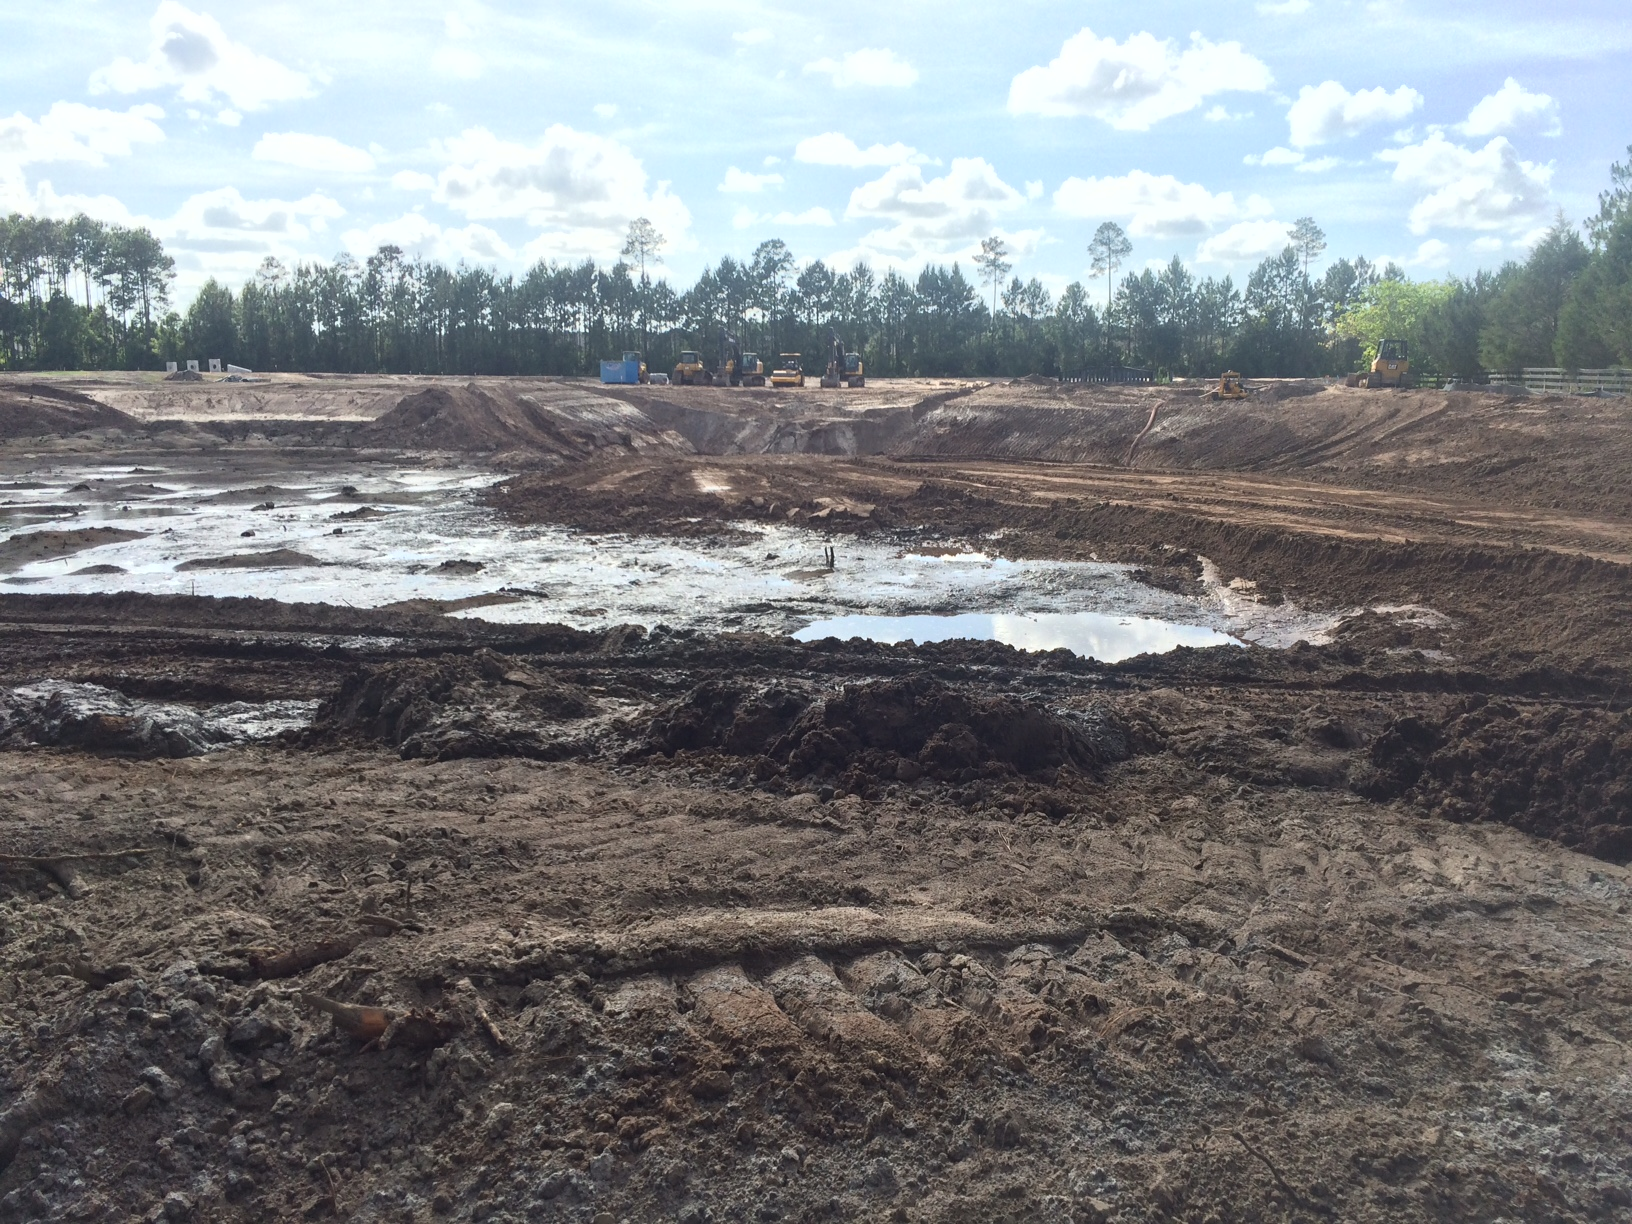 Photo of a borrow pit with a pool of mud at the center and tractors shown in the background